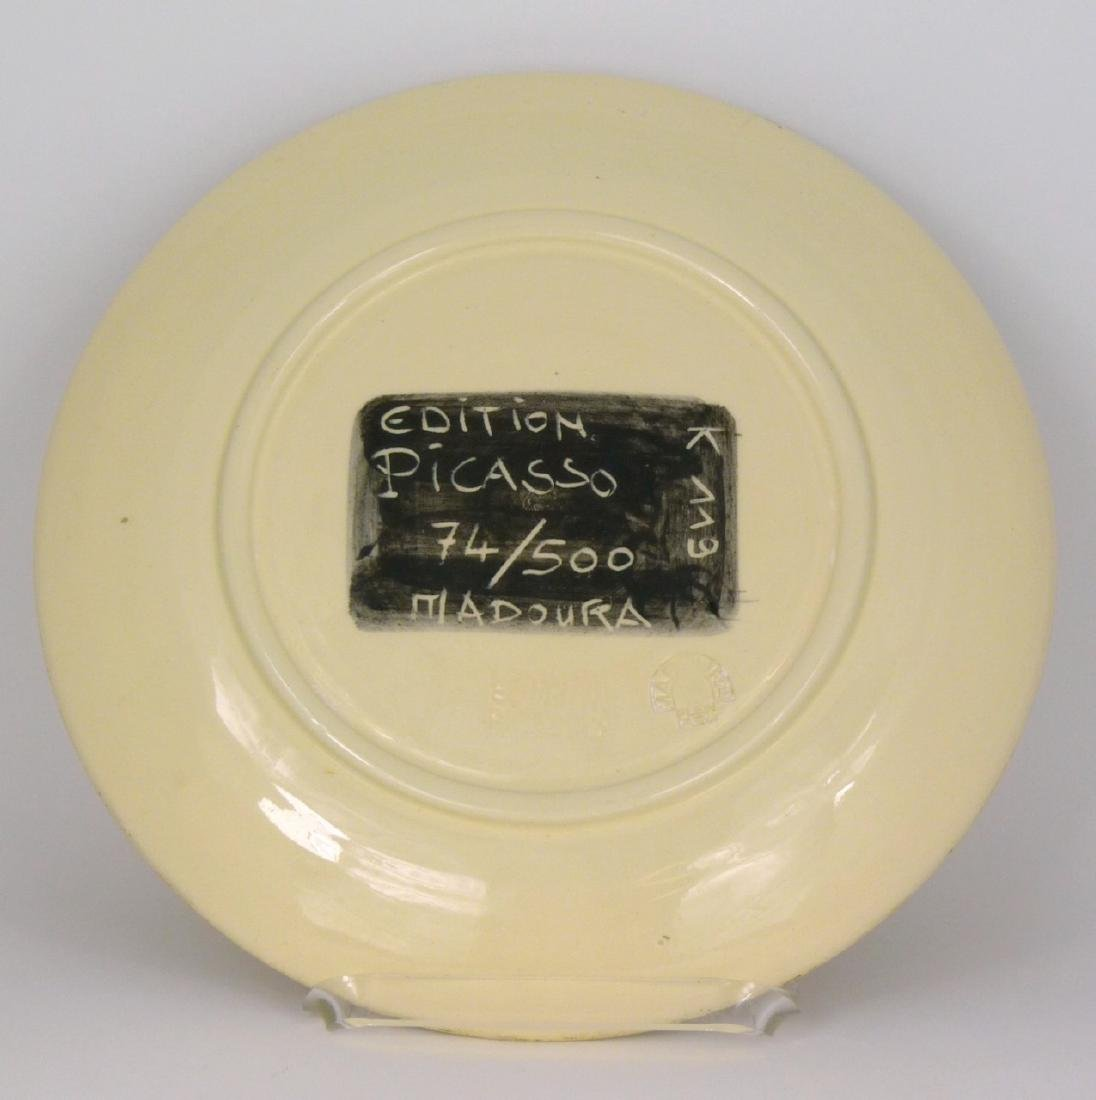 PICASSO 'MOTIF SPIRALE' MADOURA PLATE 74/500 - 2